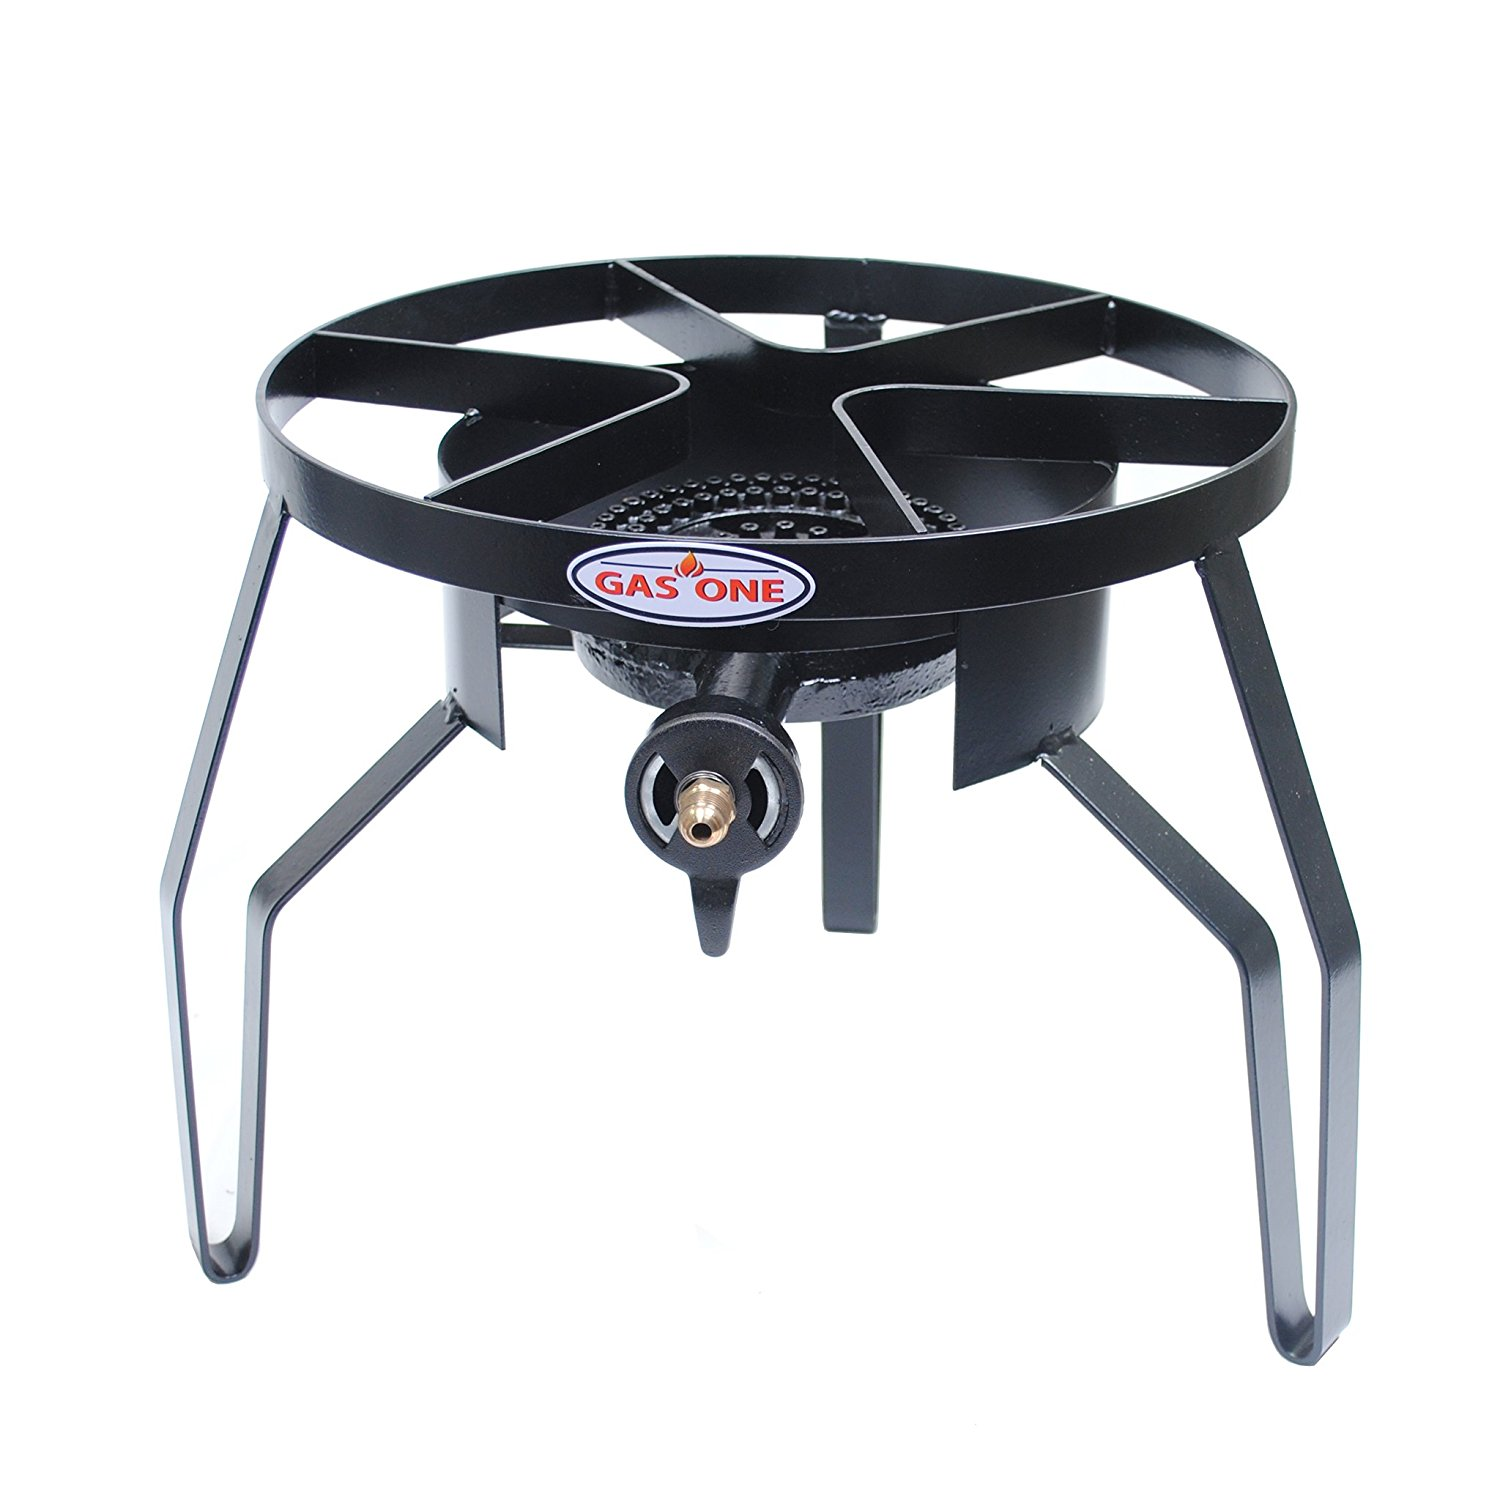 GAS ONE 60,000 BTU High-Pressure Single Burner Outdoor Stove Propane Gas Cooker with